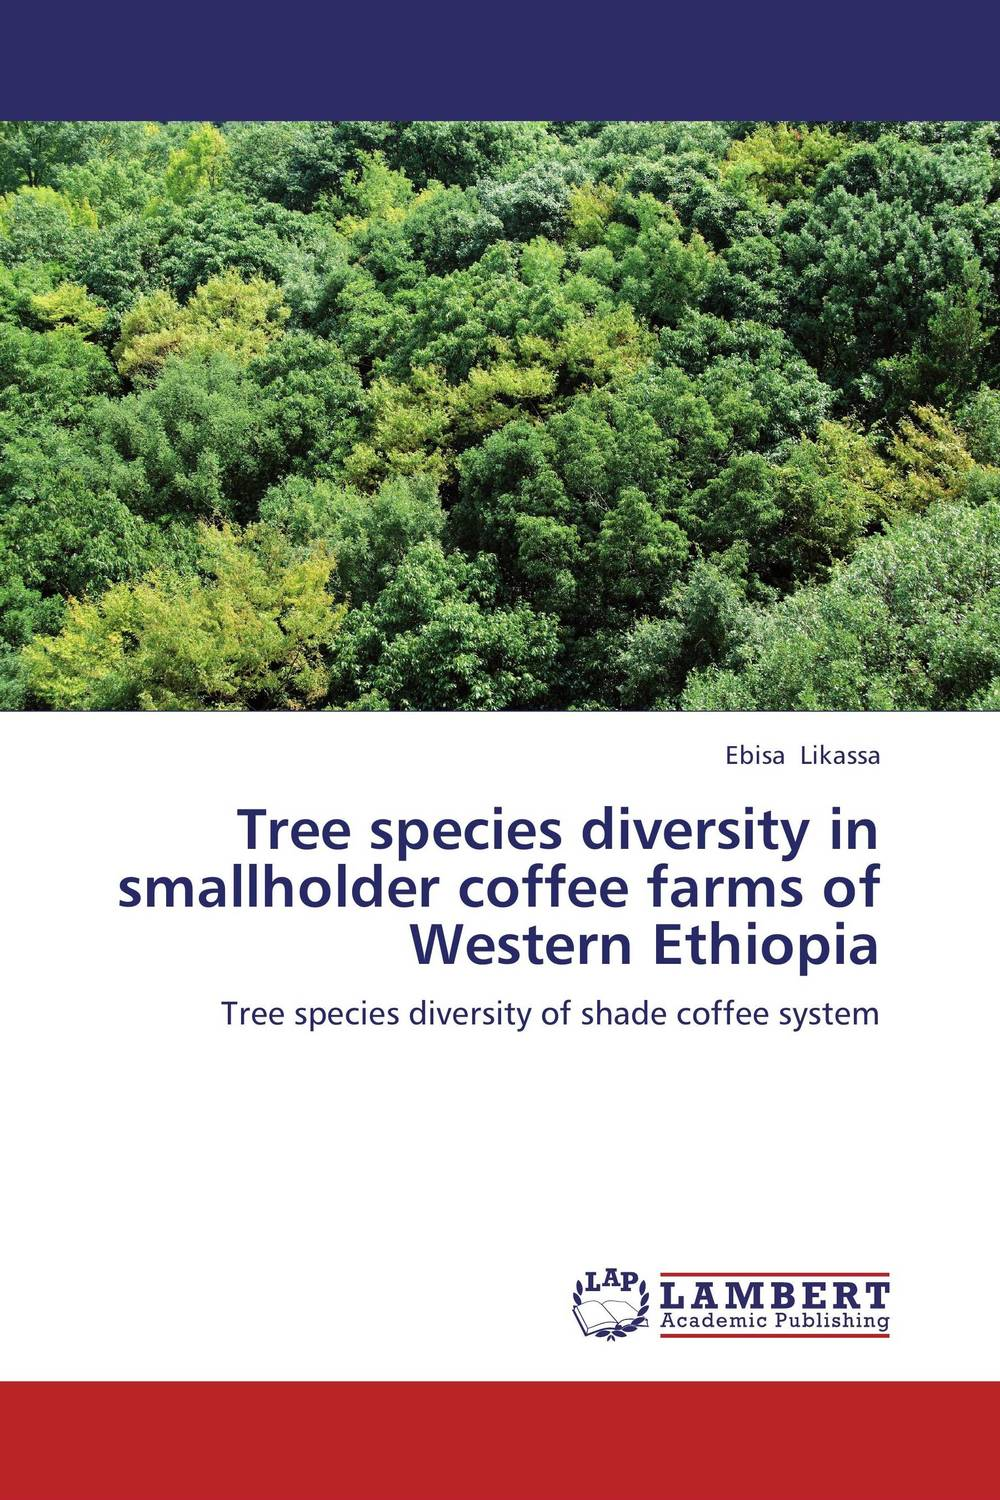 Tree species diversity in smallholder coffee farms of Western Ethiopia sumit chakravarty gopal shukla and amarendra nath dey tree borne oilseeds species